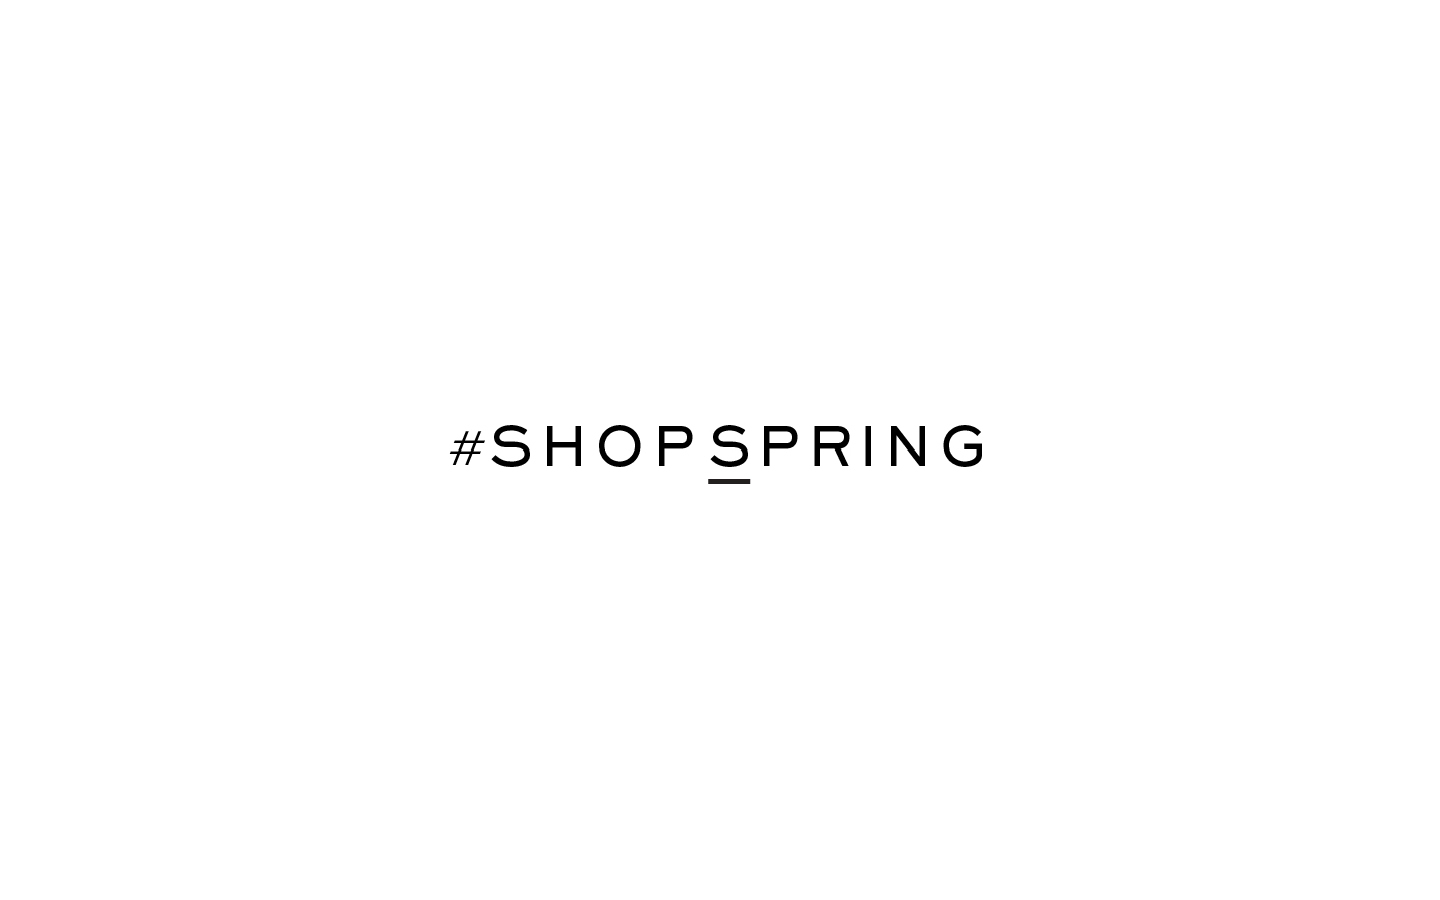 shopspring_13